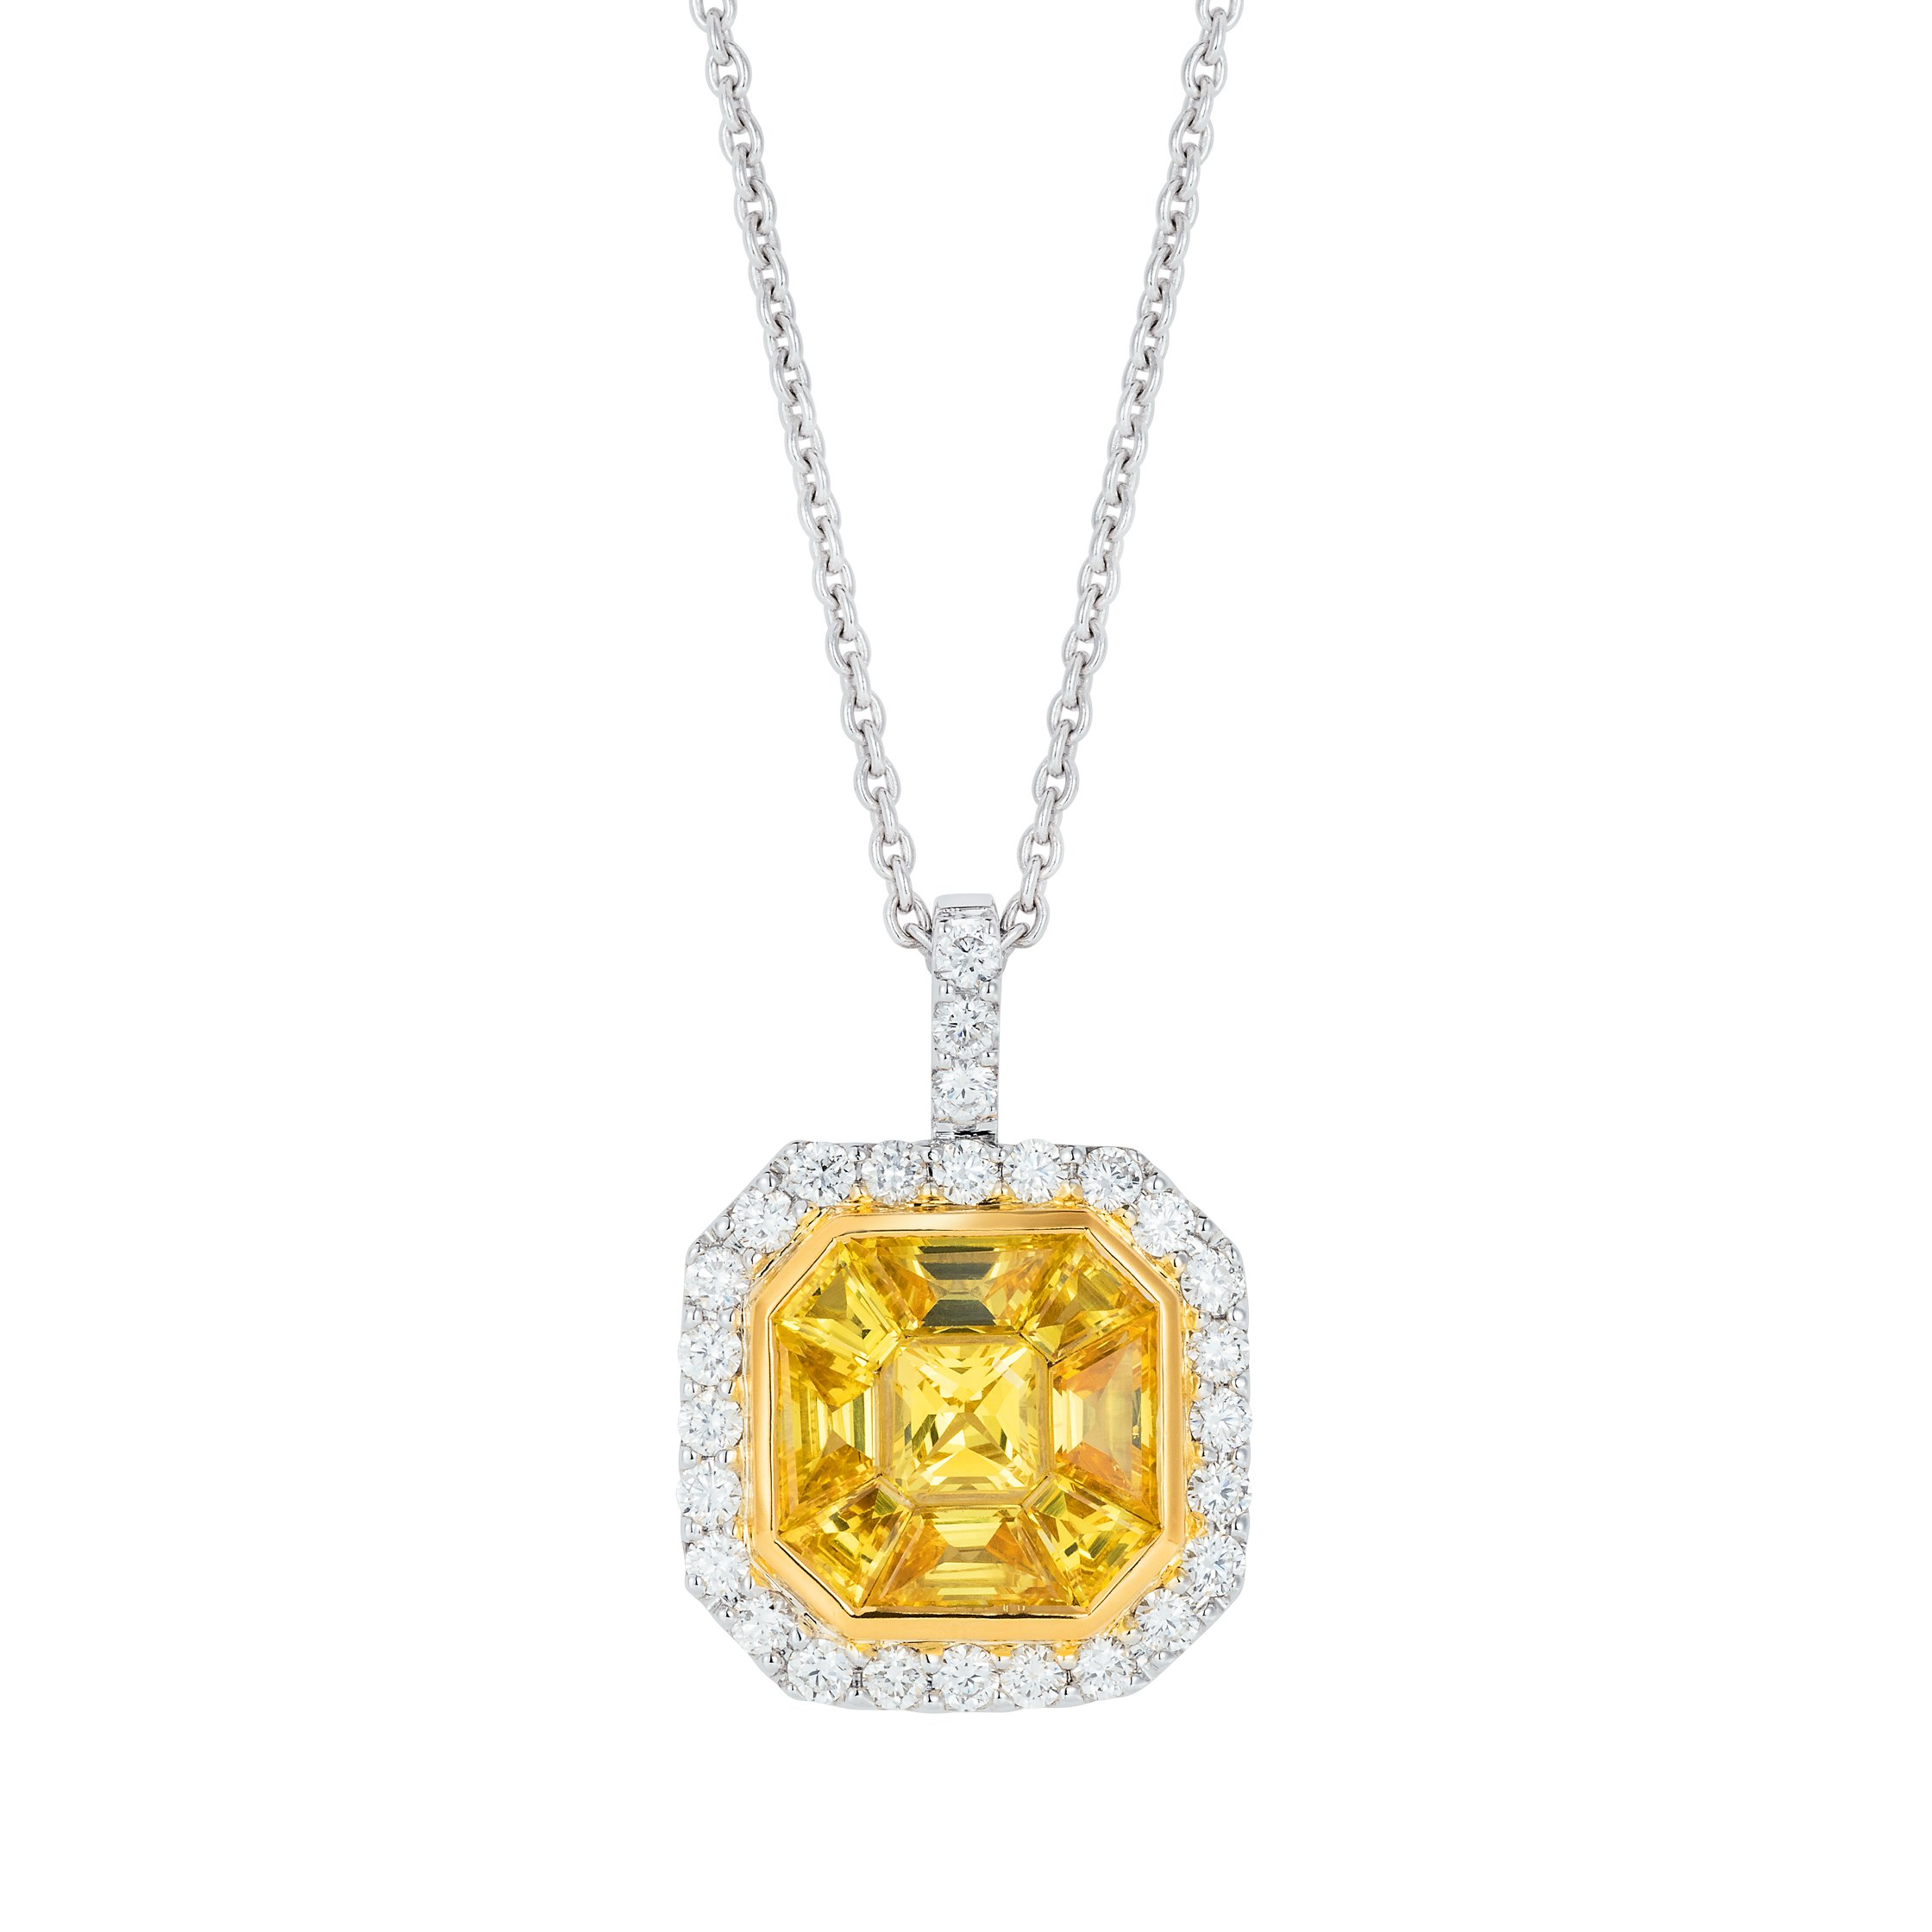 image finnies jewellers pendant pendants the stone sapphire coloured jewellery yellow gold